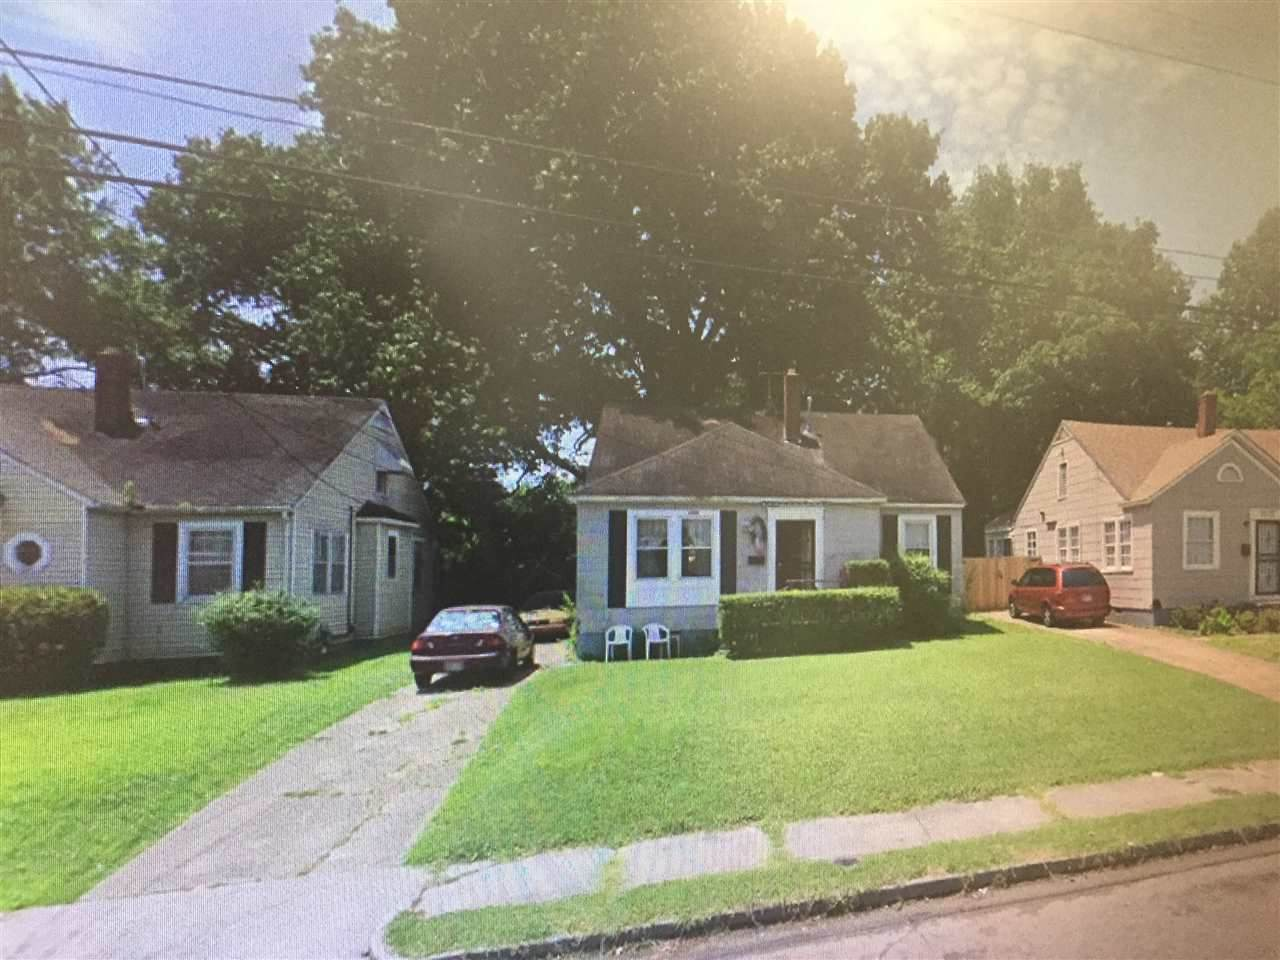 3543 Given Ave - Photo 1